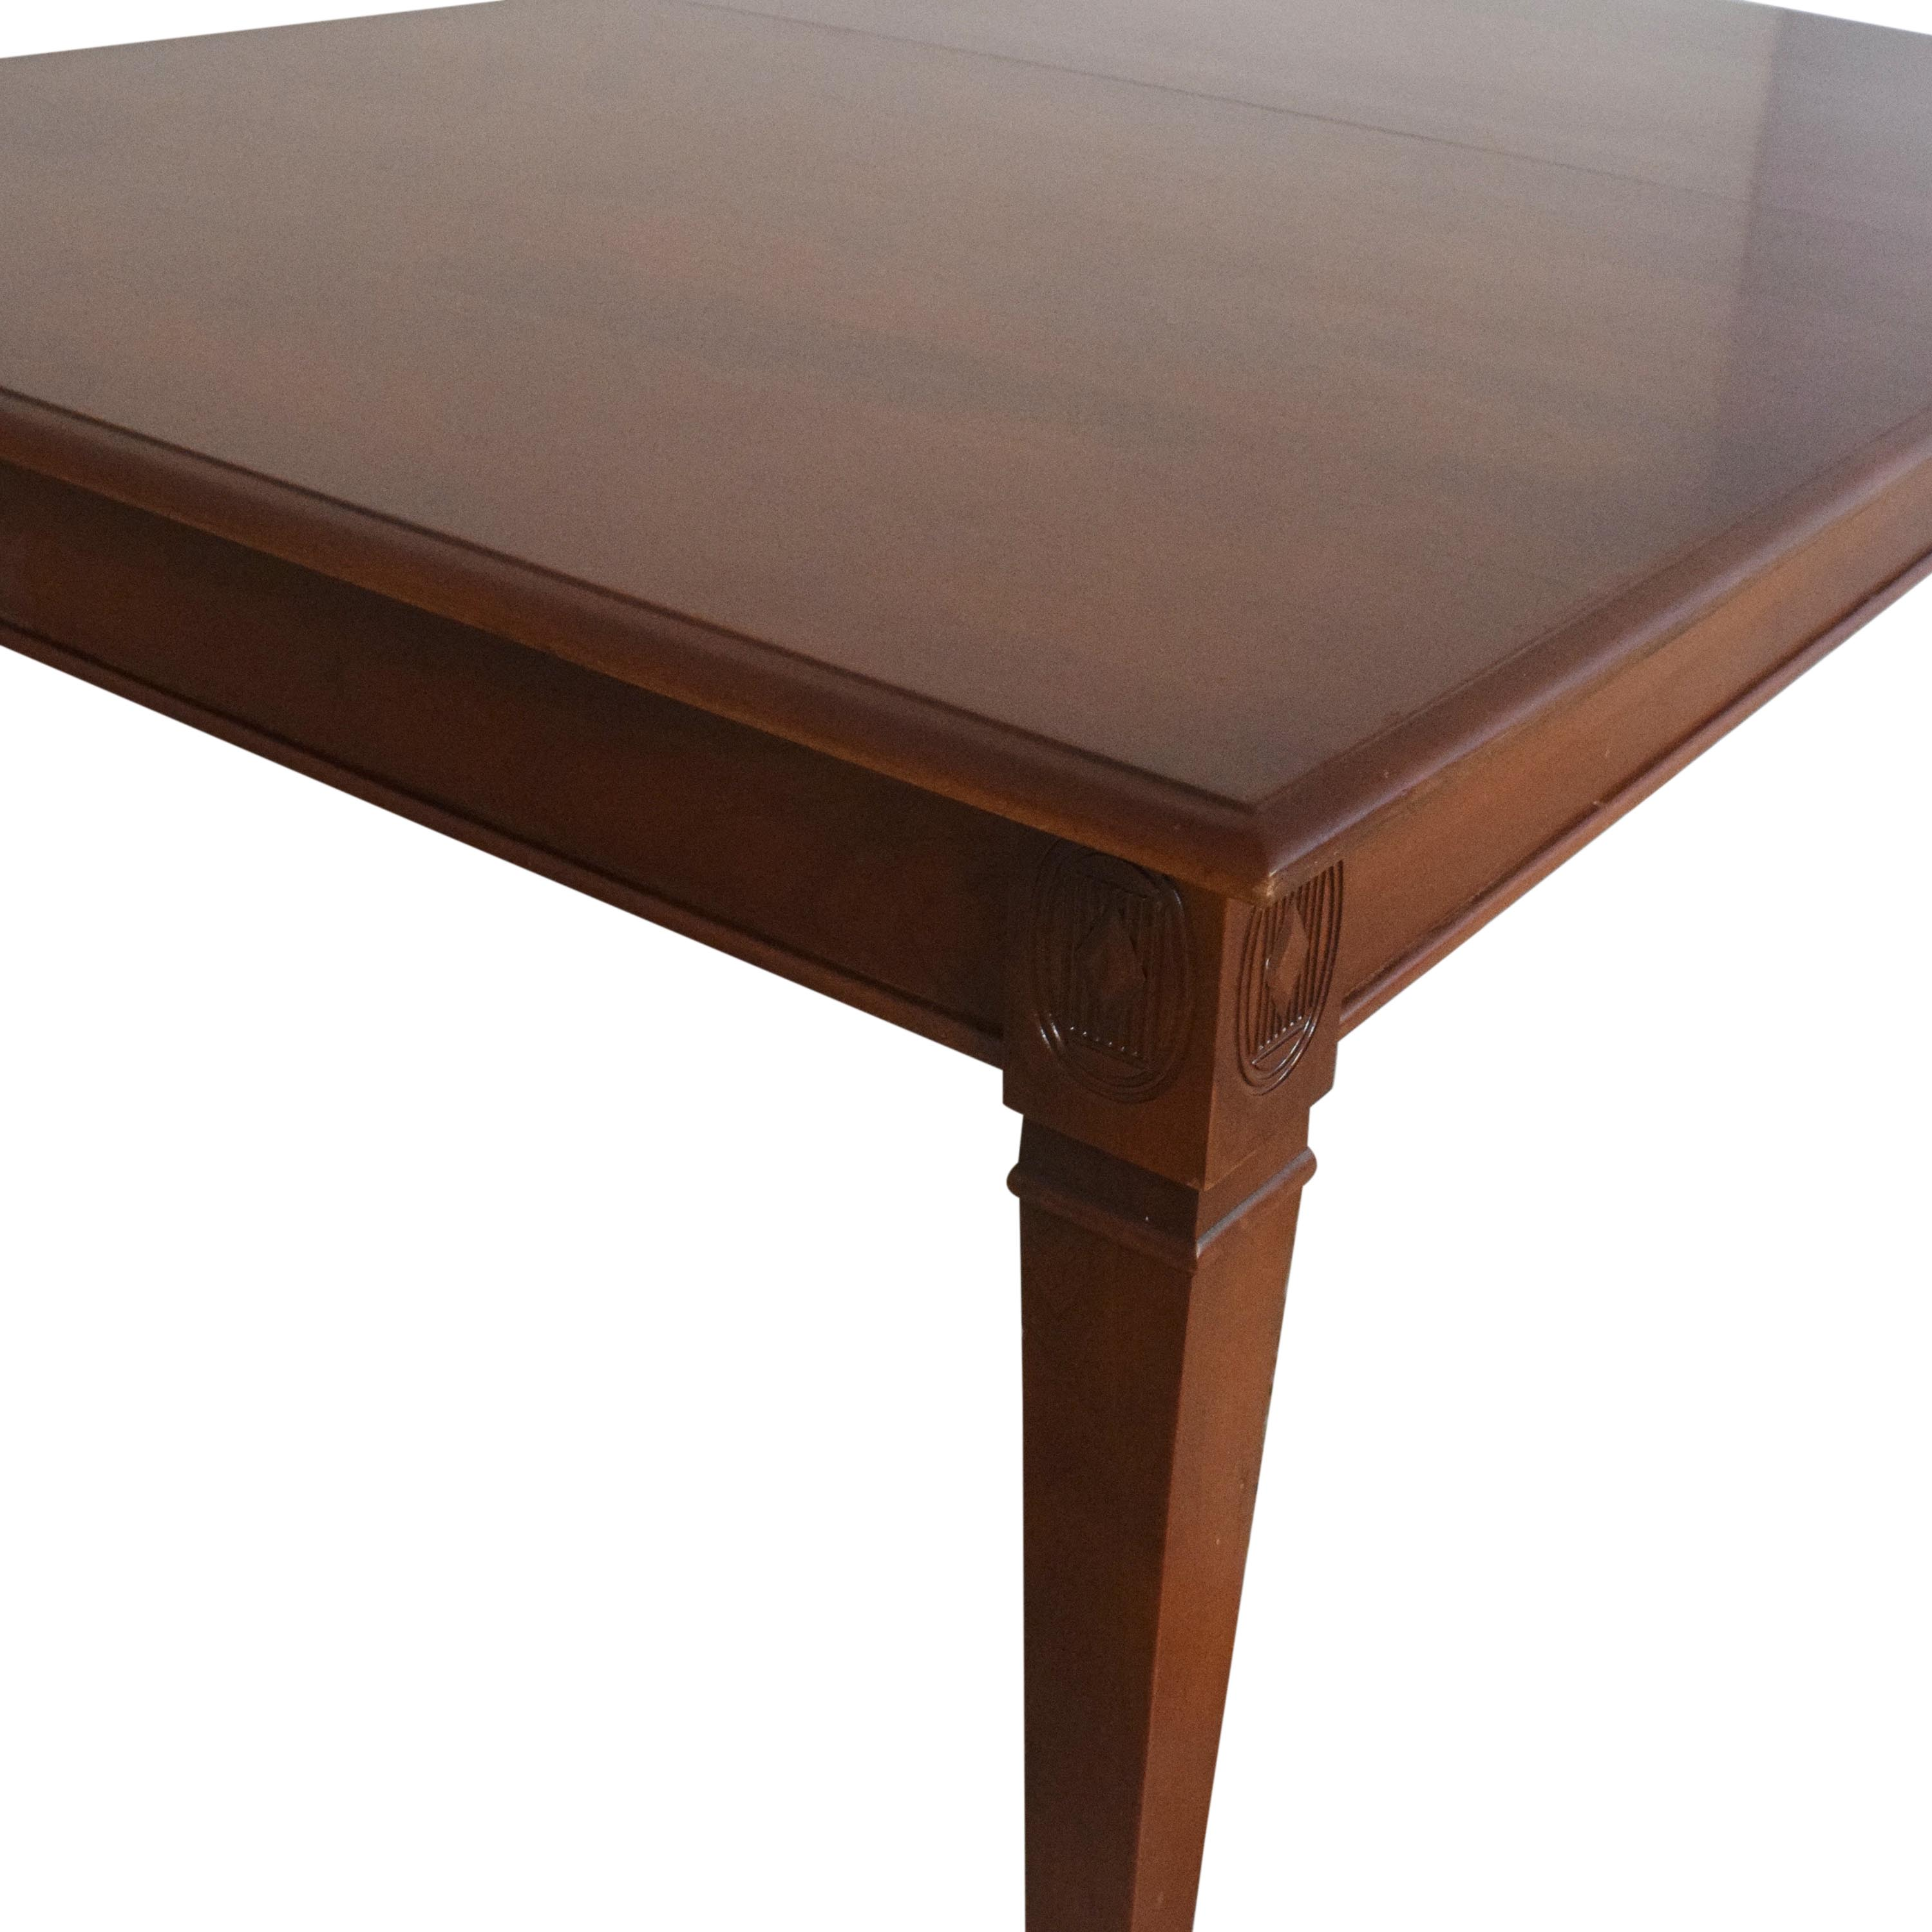 Harden Harden Extension Dining Table on sale